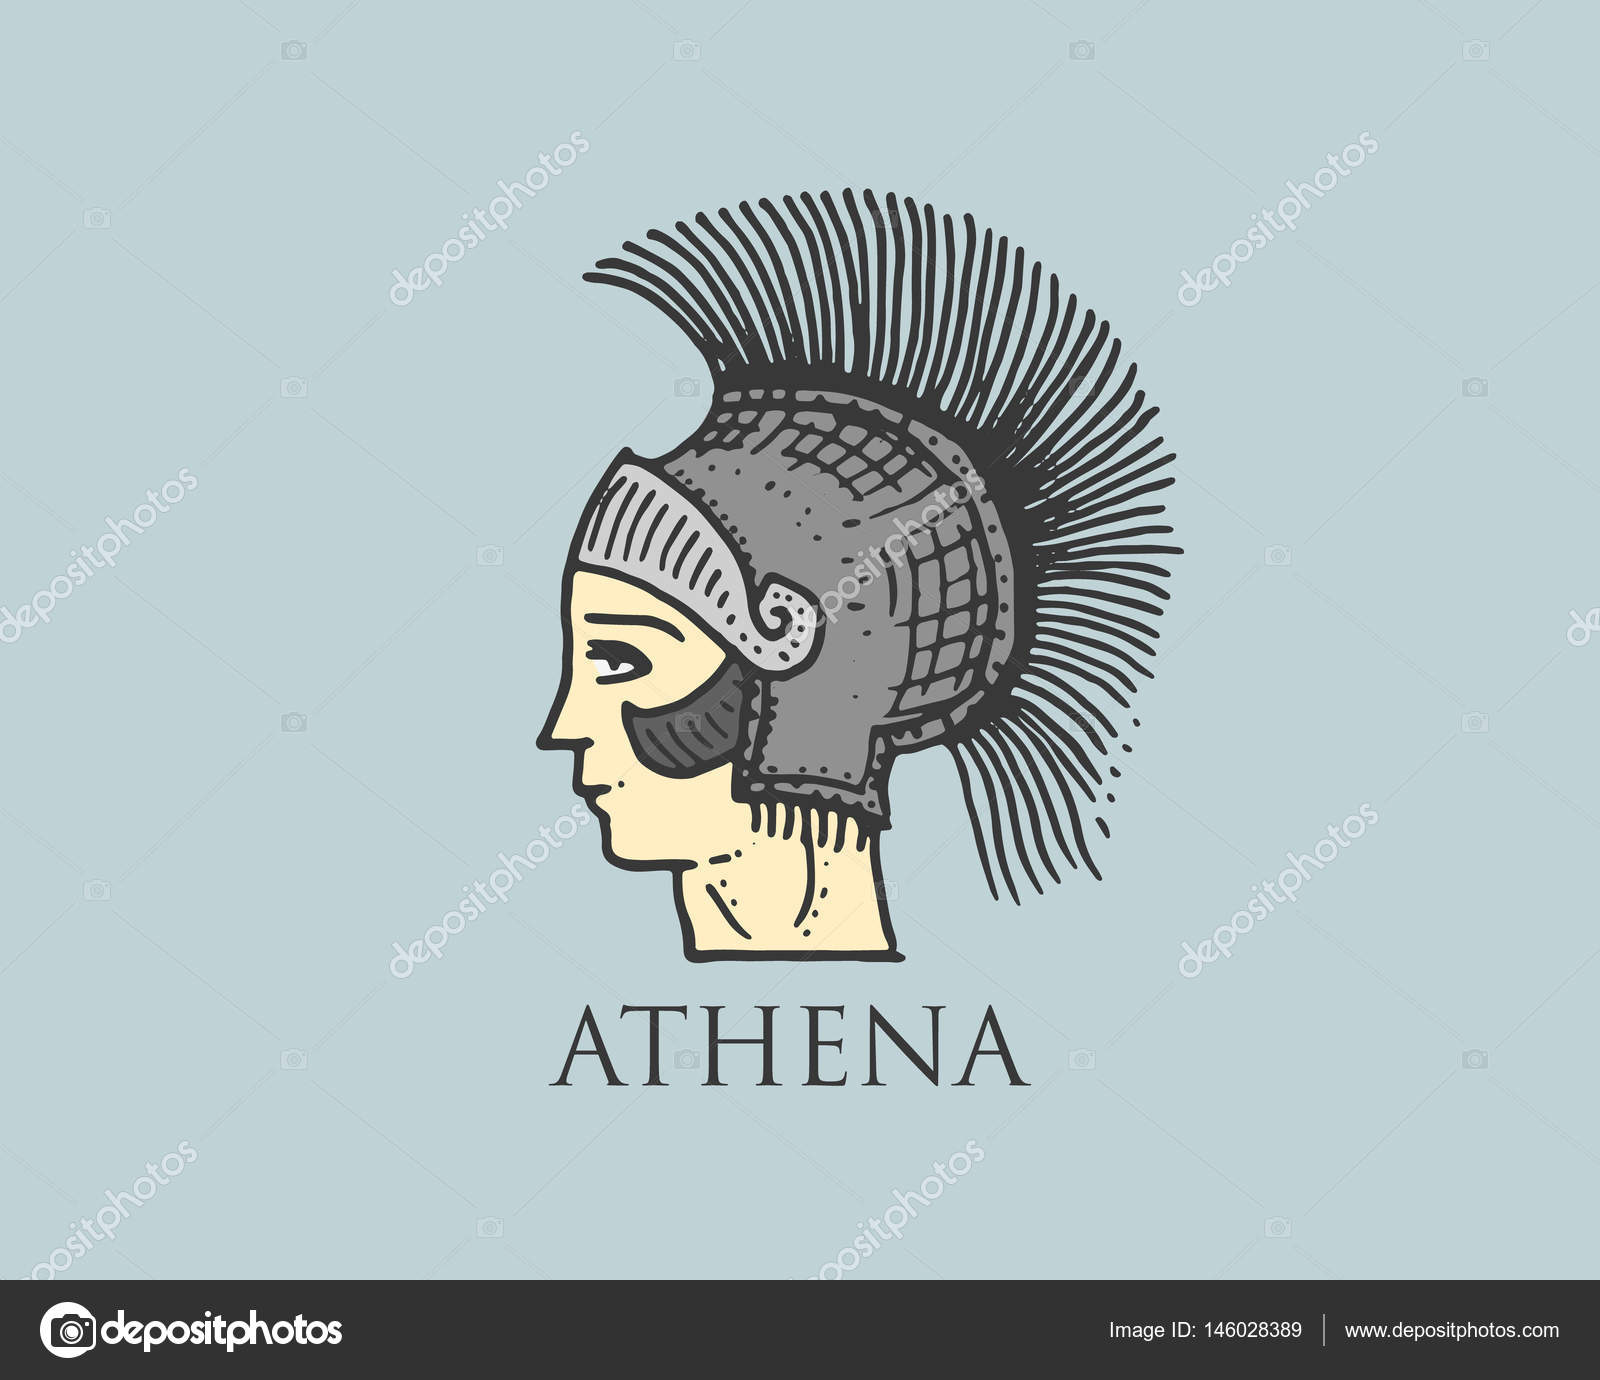 Godness athena logo ancient greece antique symbol vintage godness athena logo ancient greece antique symbol vintage engraved hand drawn in sketch or biocorpaavc Images